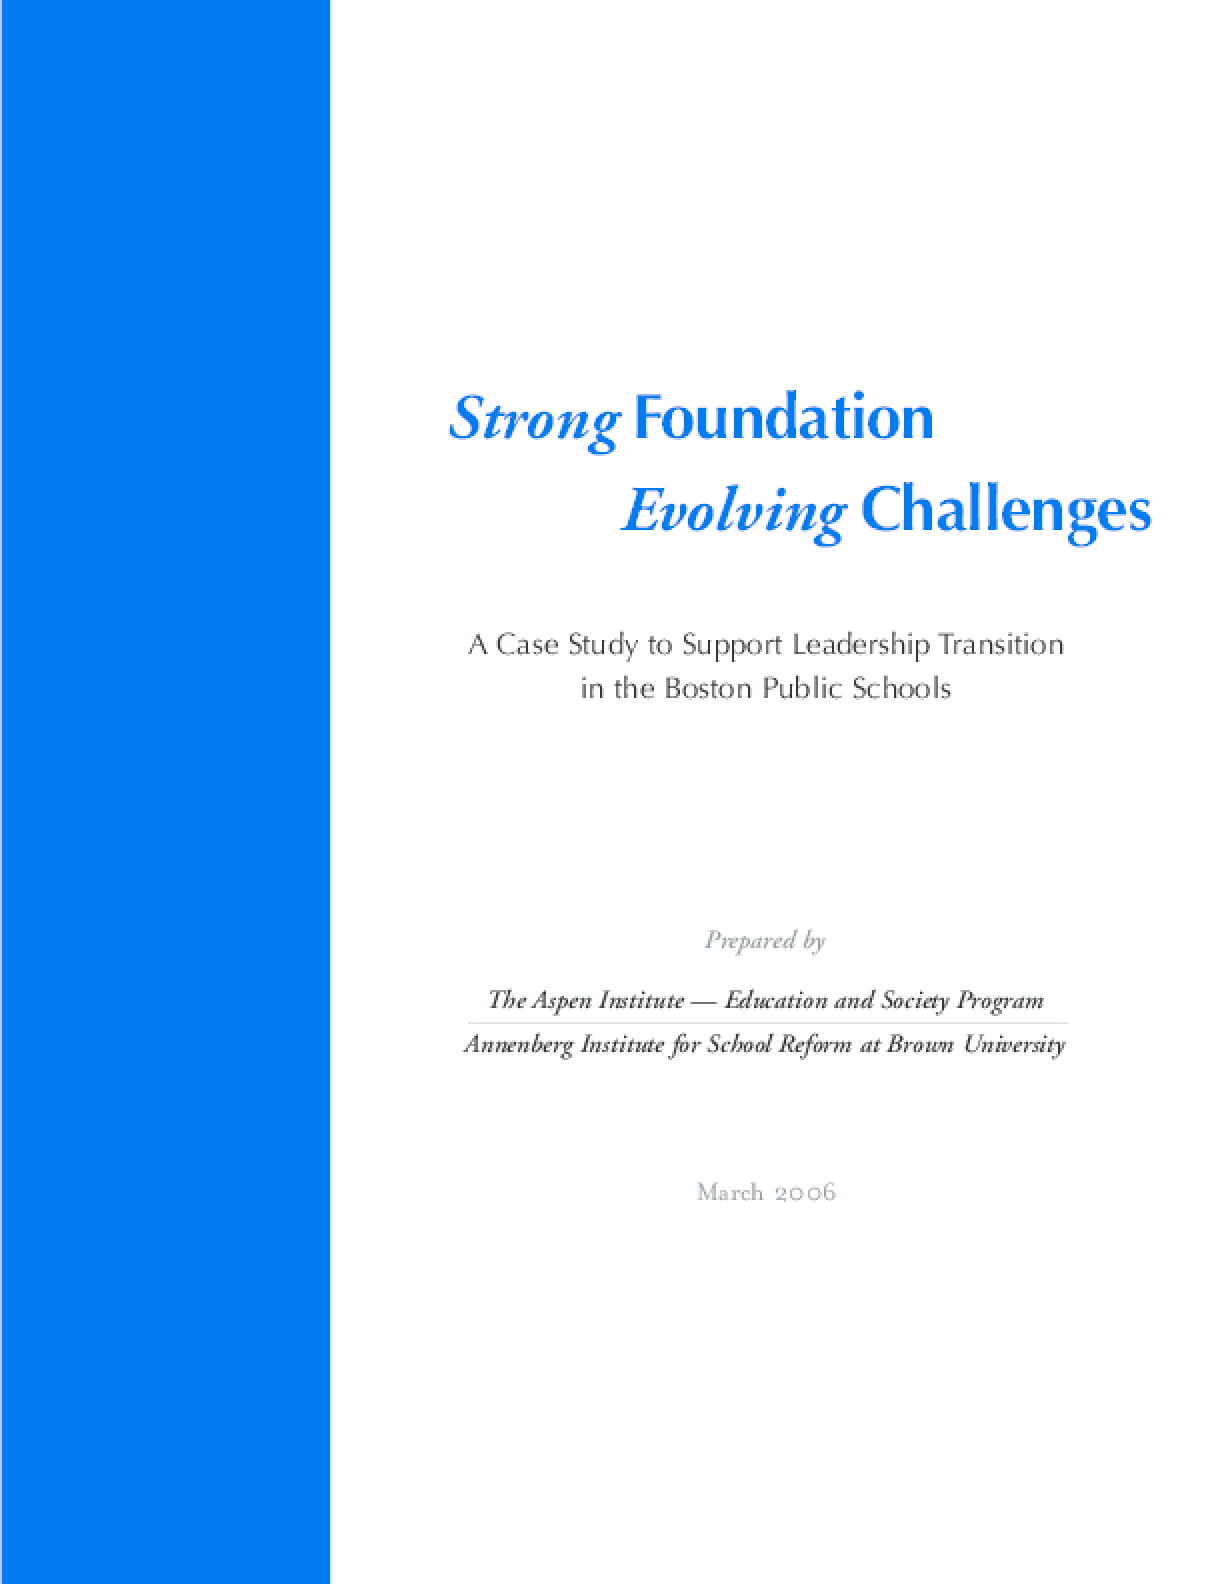 Strong Foundation, Evolving Challenges: A Case Study to Support Leadership Transition in the Boston Public Schools